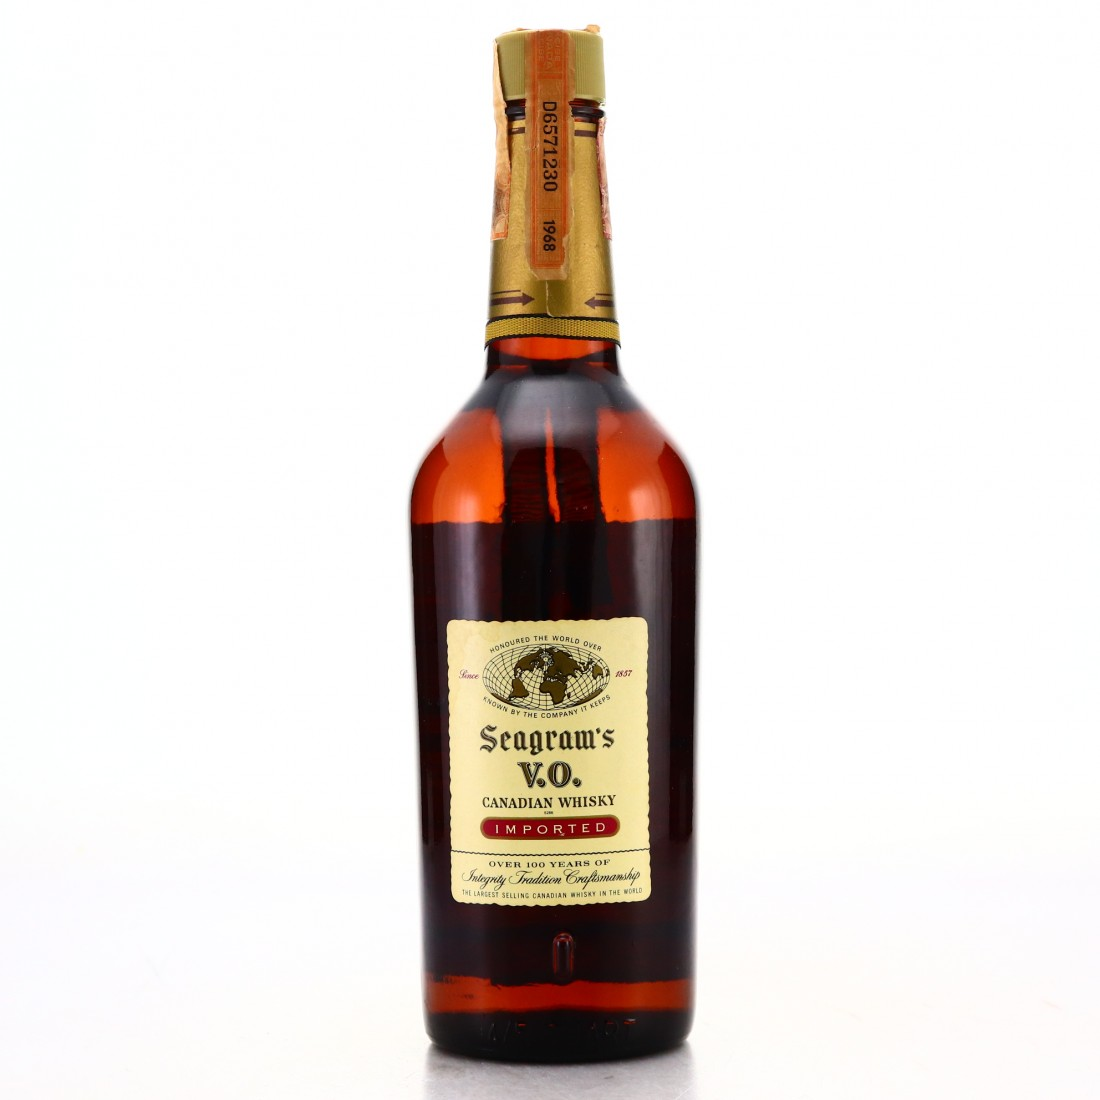 Seagram's VO 1968 Canadian Whisky